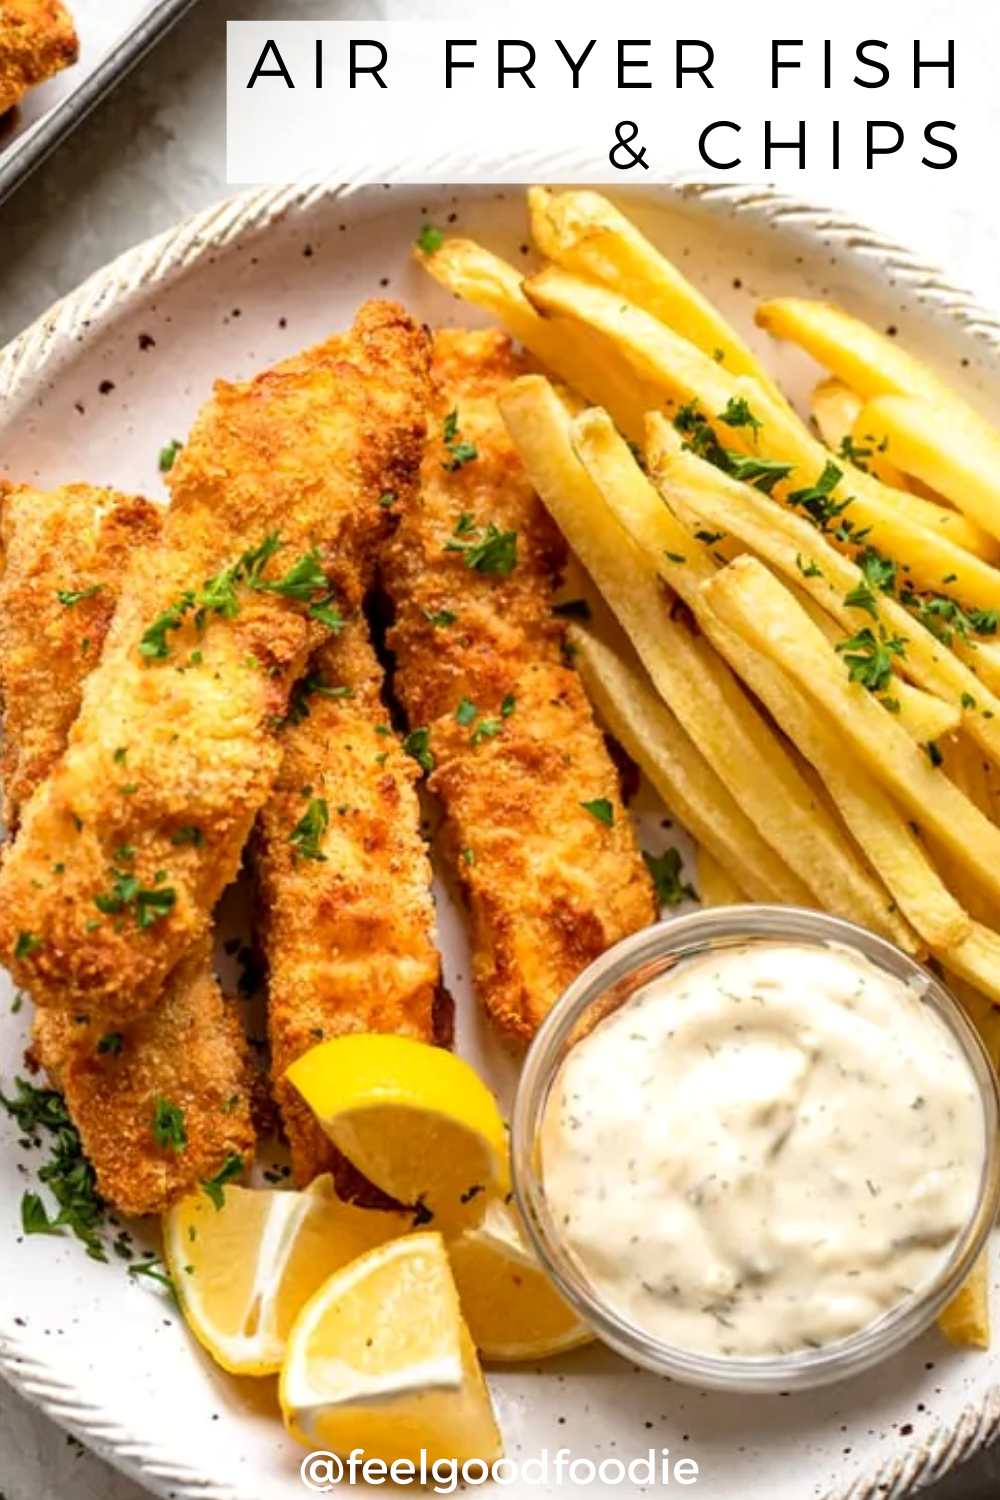 Air Fryer Fish & Chips Recipe in 2020 Recipes